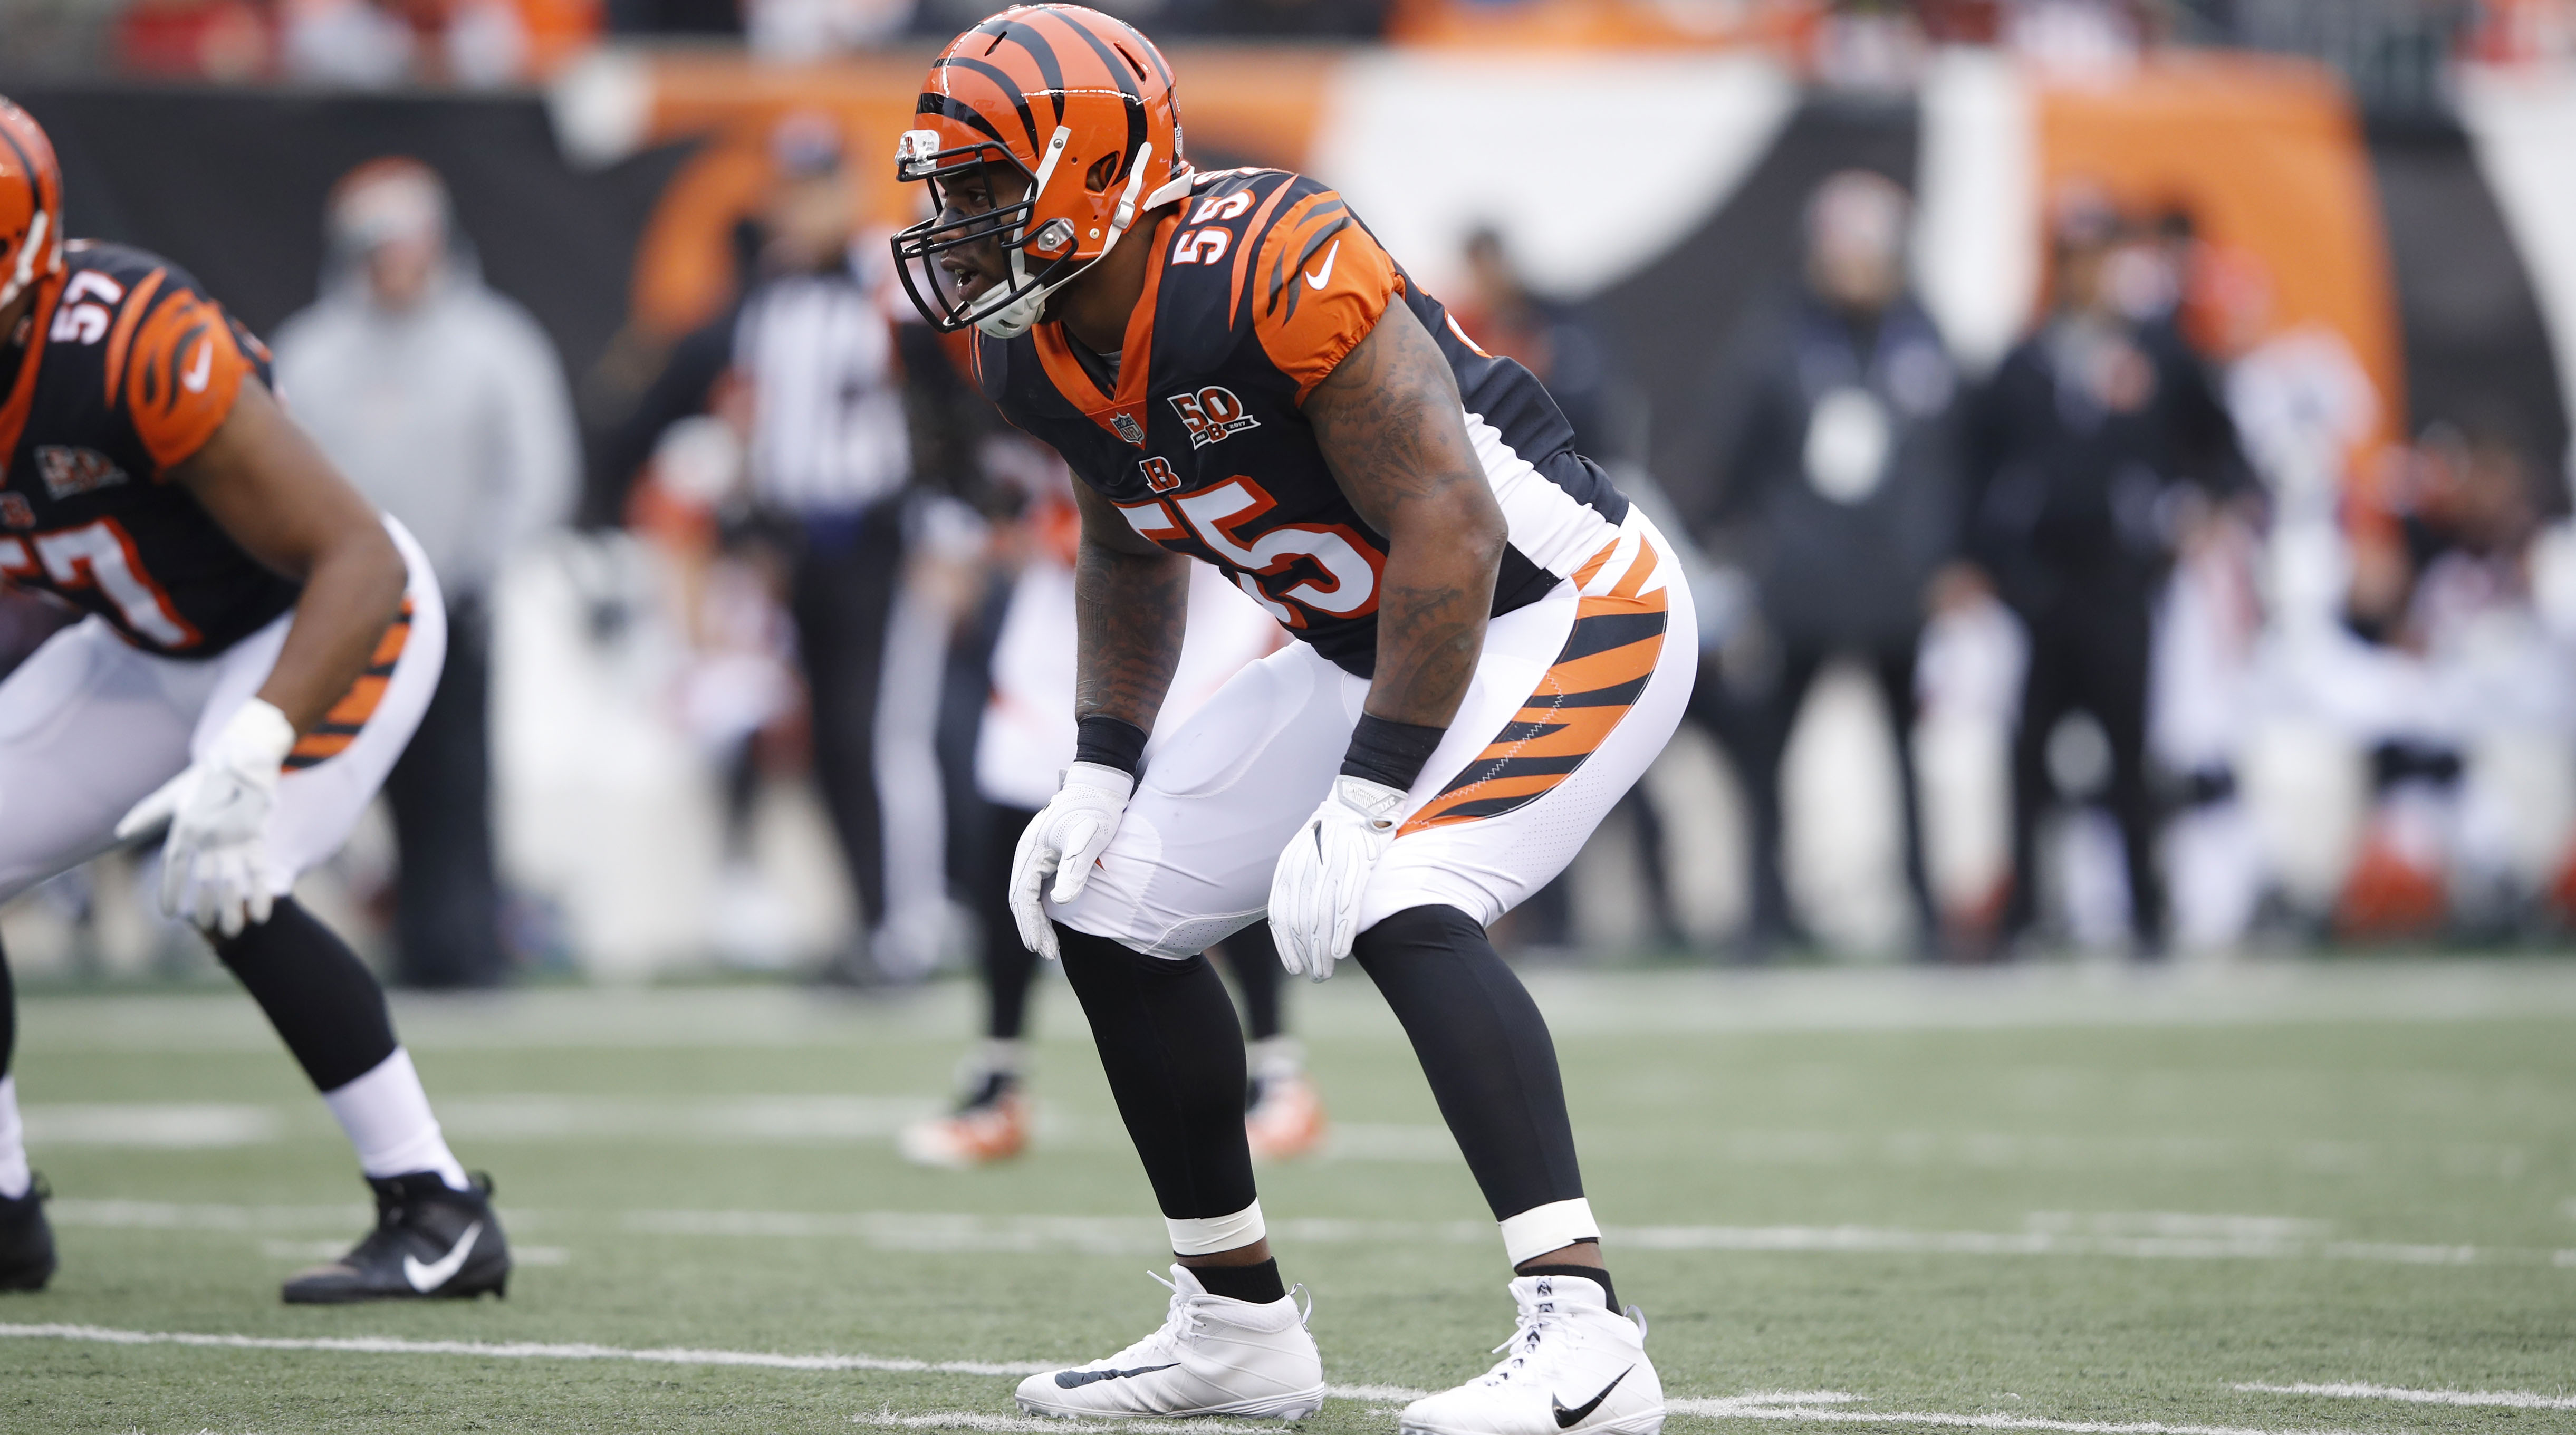 Vontaze Burfict hits getting reviewed by NFL